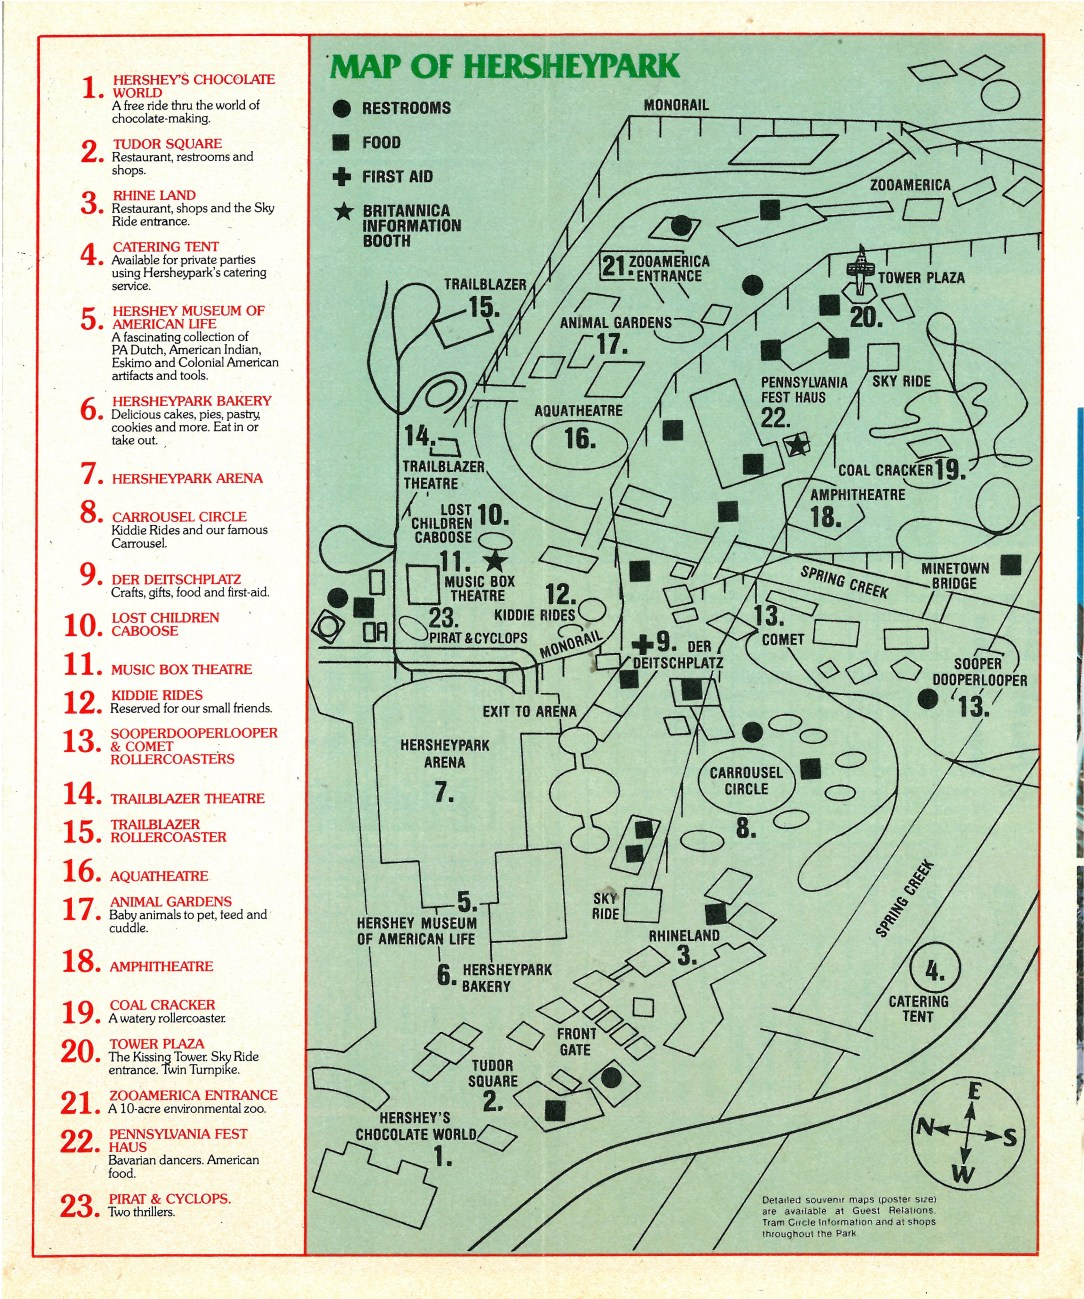 1980 Hersheypark map